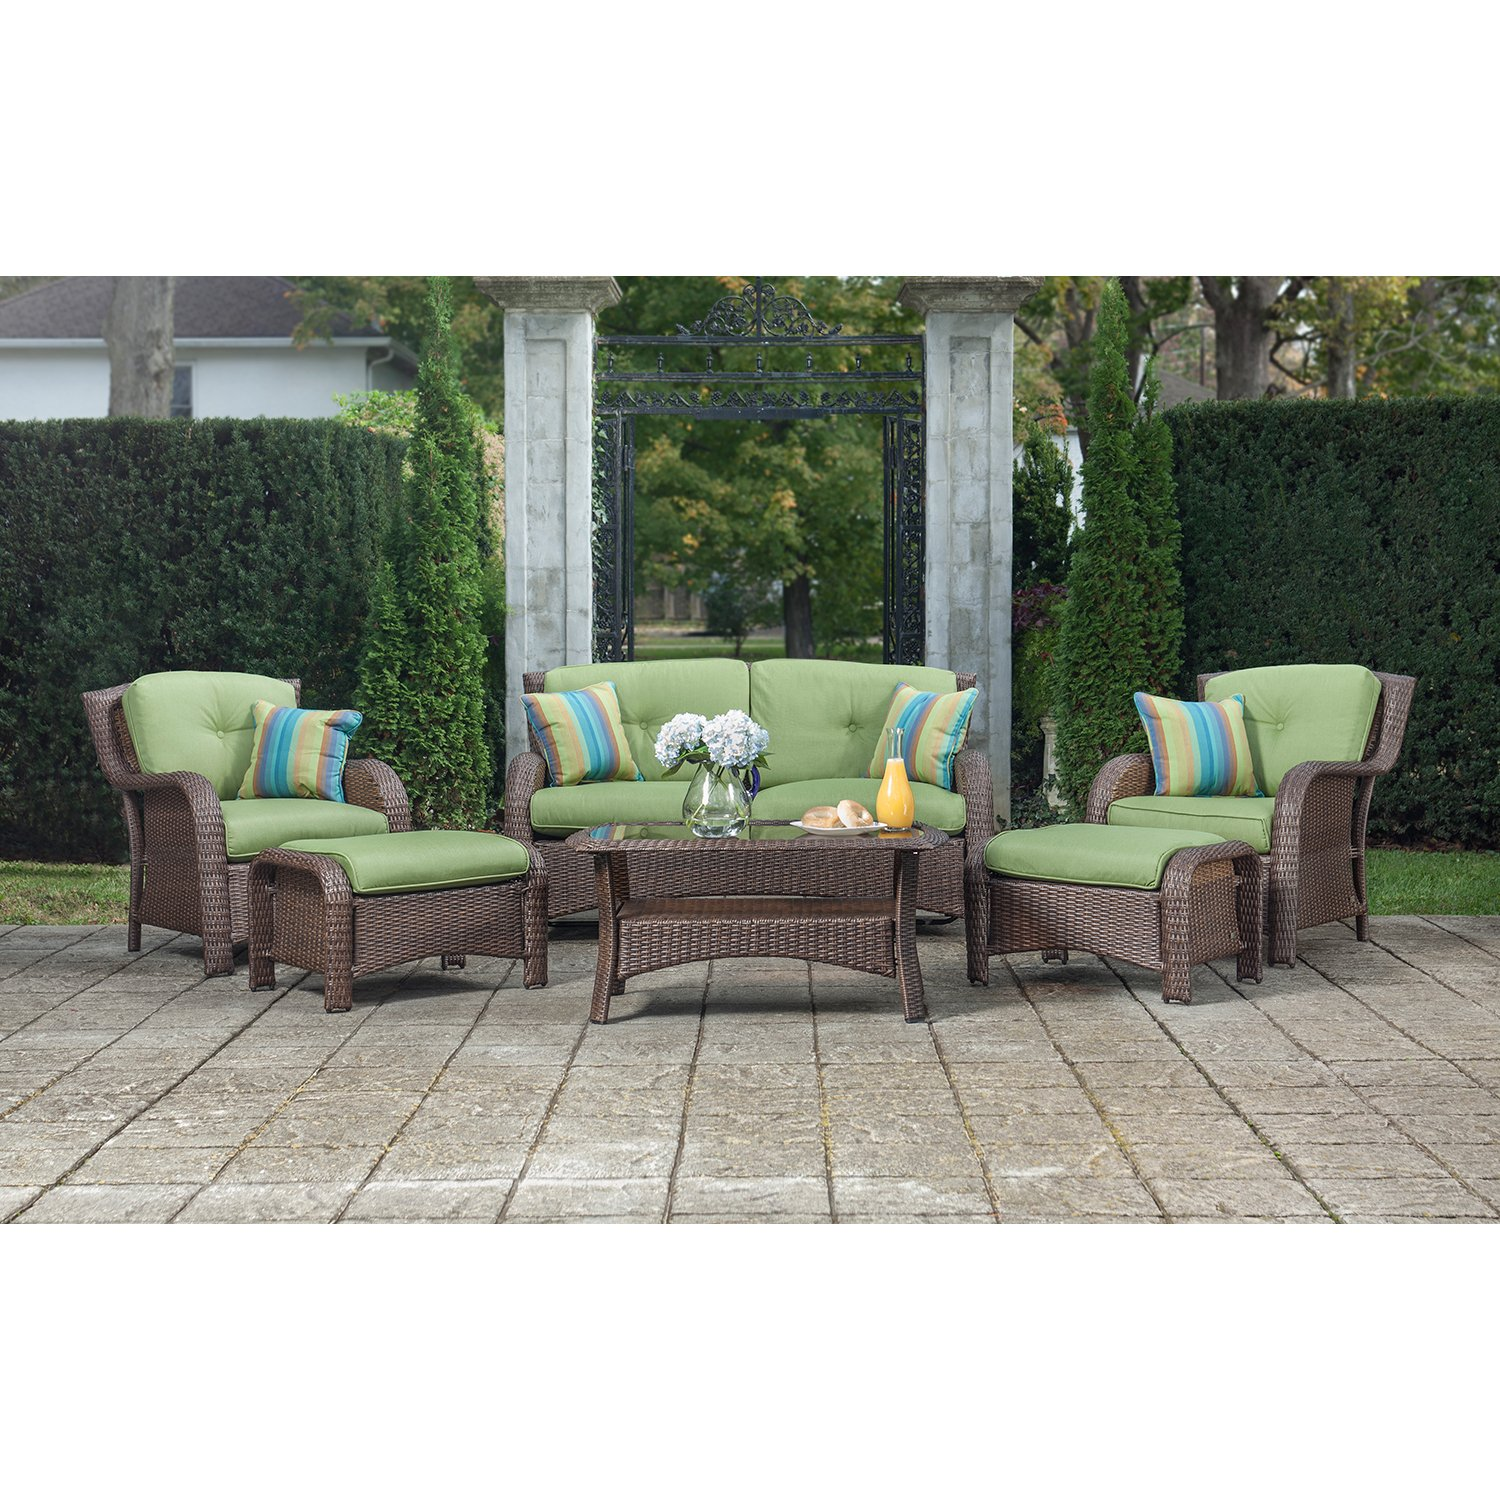 Amazon.com La-Z-Boy Outdoor Sawyer 6 Piece Resin Wicker Patio Furniture Conversation Set (Cilantro Green) With All Weather Sunbrella Cushions Garden u0026 ...  sc 1 st  Amazon.com & Amazon.com: La-Z-Boy Outdoor Sawyer 6 Piece Resin Wicker Patio ... islam-shia.org